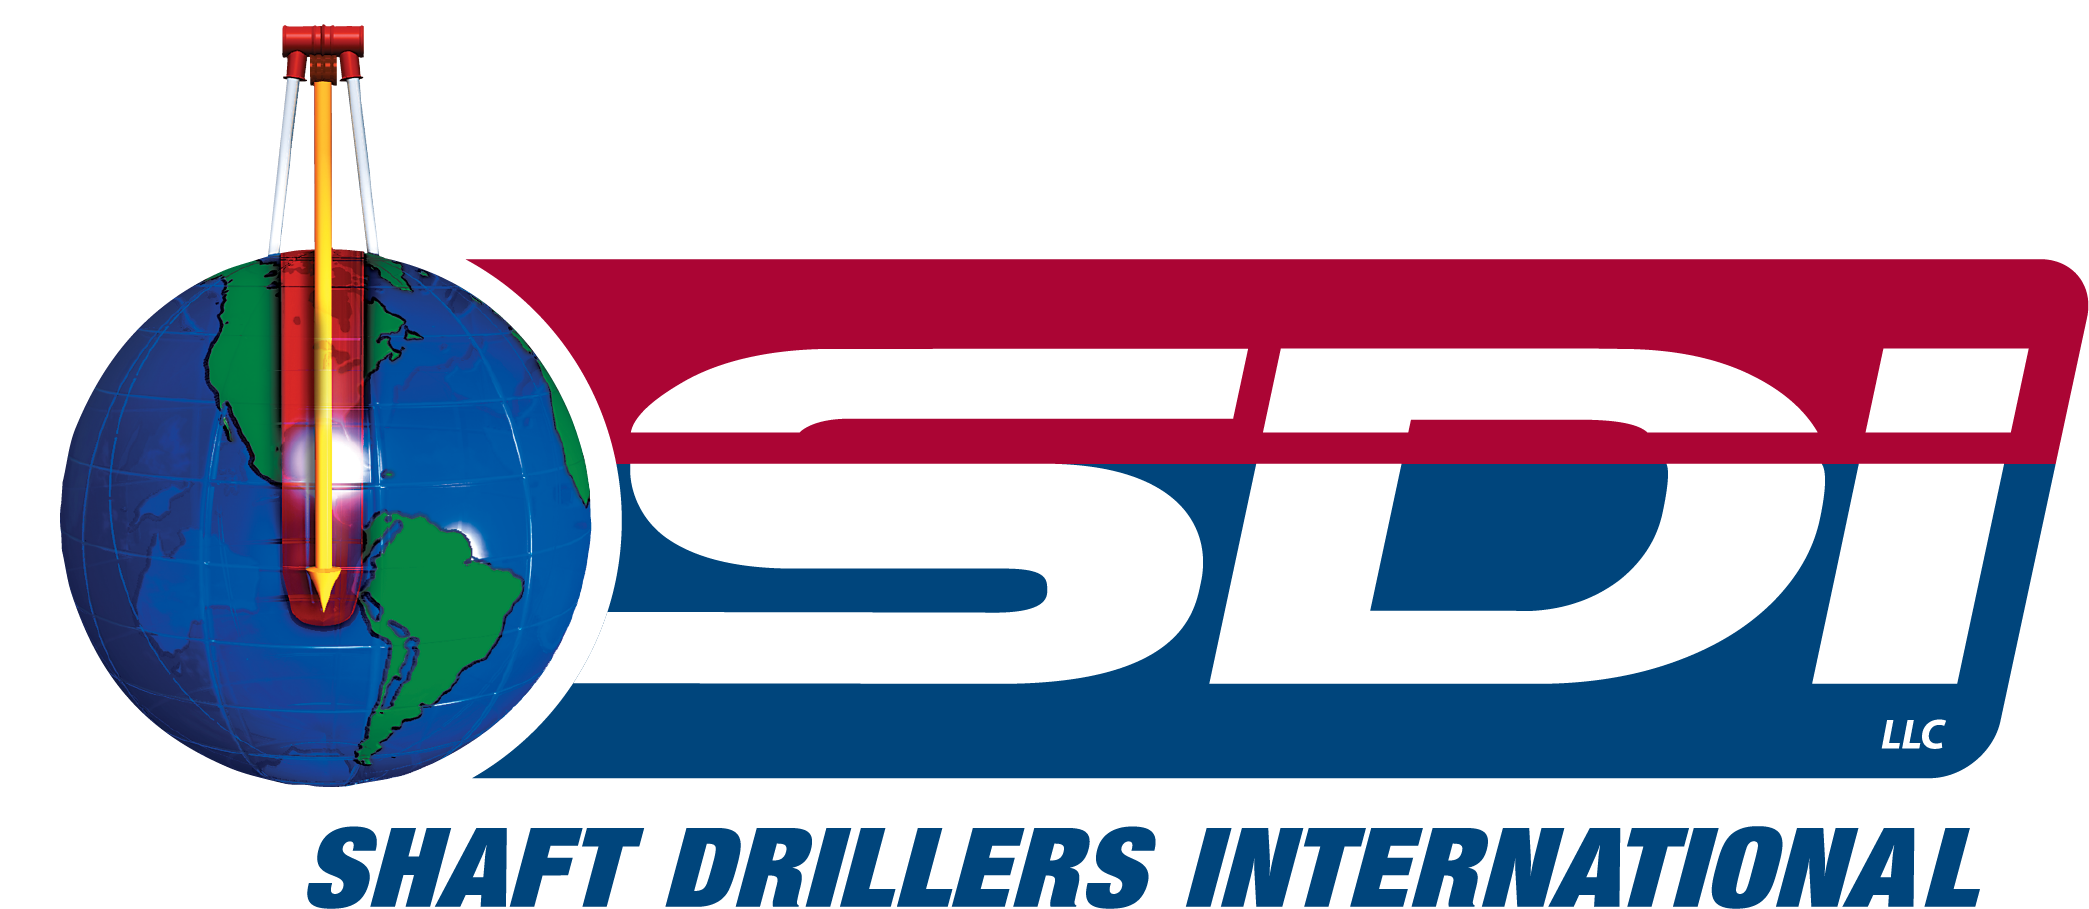 Shaft Drillers International, LLC